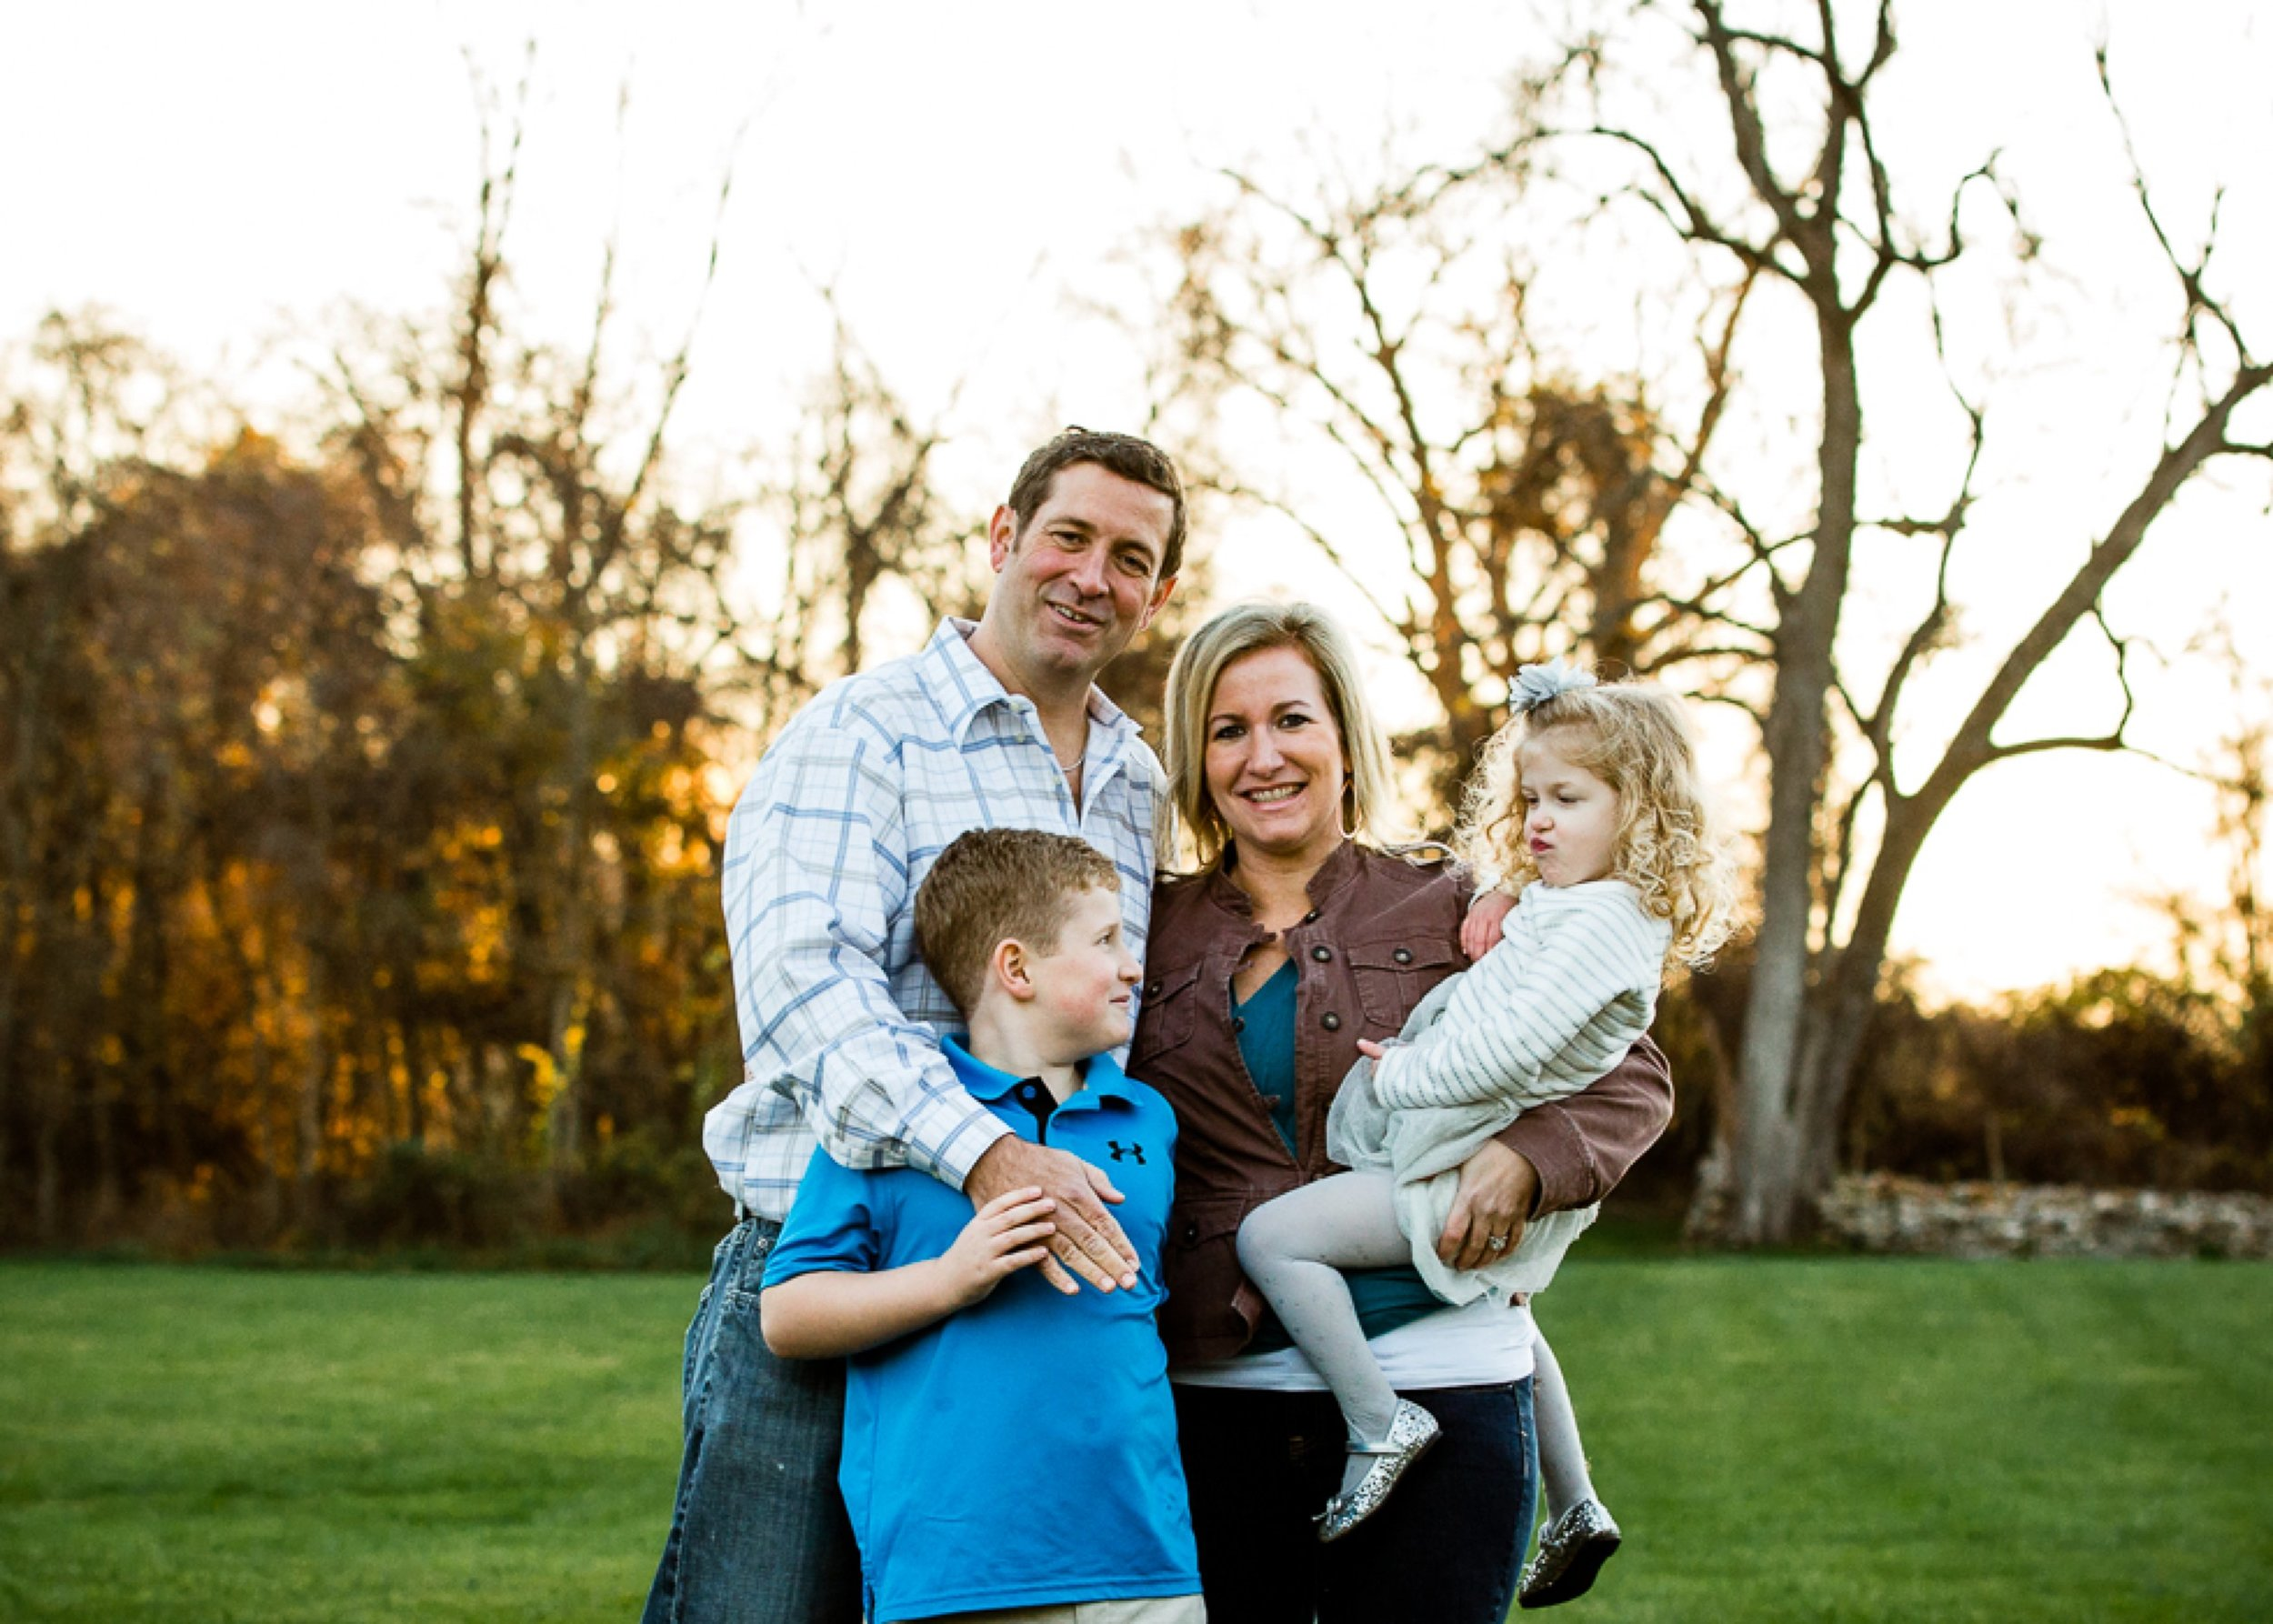 Corbin Family,blog pick,corbin final,cromwell valley,